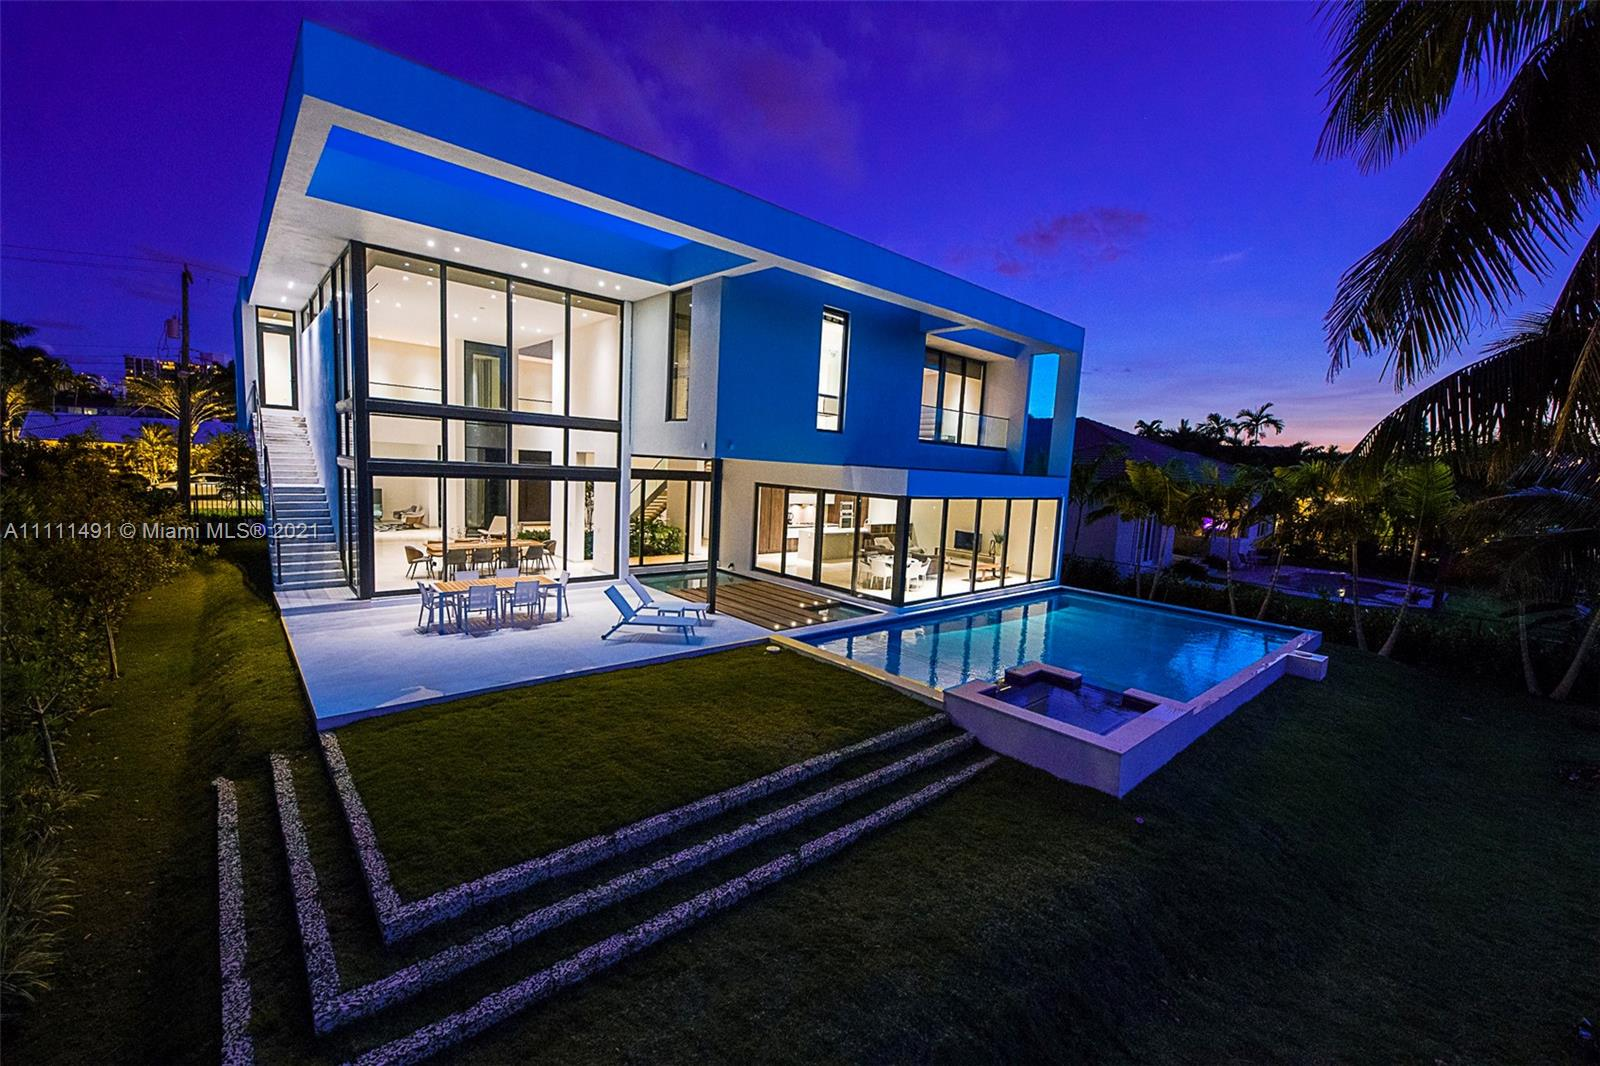 Located in the exclusive Golden Isles community, this architecturally stunning waterfront home displays exquisite sophistication, & thoughtful details throughout. This Modern home seamlessly combines traditional w/ a modern twist creating a balance that boasts comfort, light, & warmth. Offering 6 bedrooms, unique custom baths, study 2 den, private maid quarters, laundry rooms, & more!